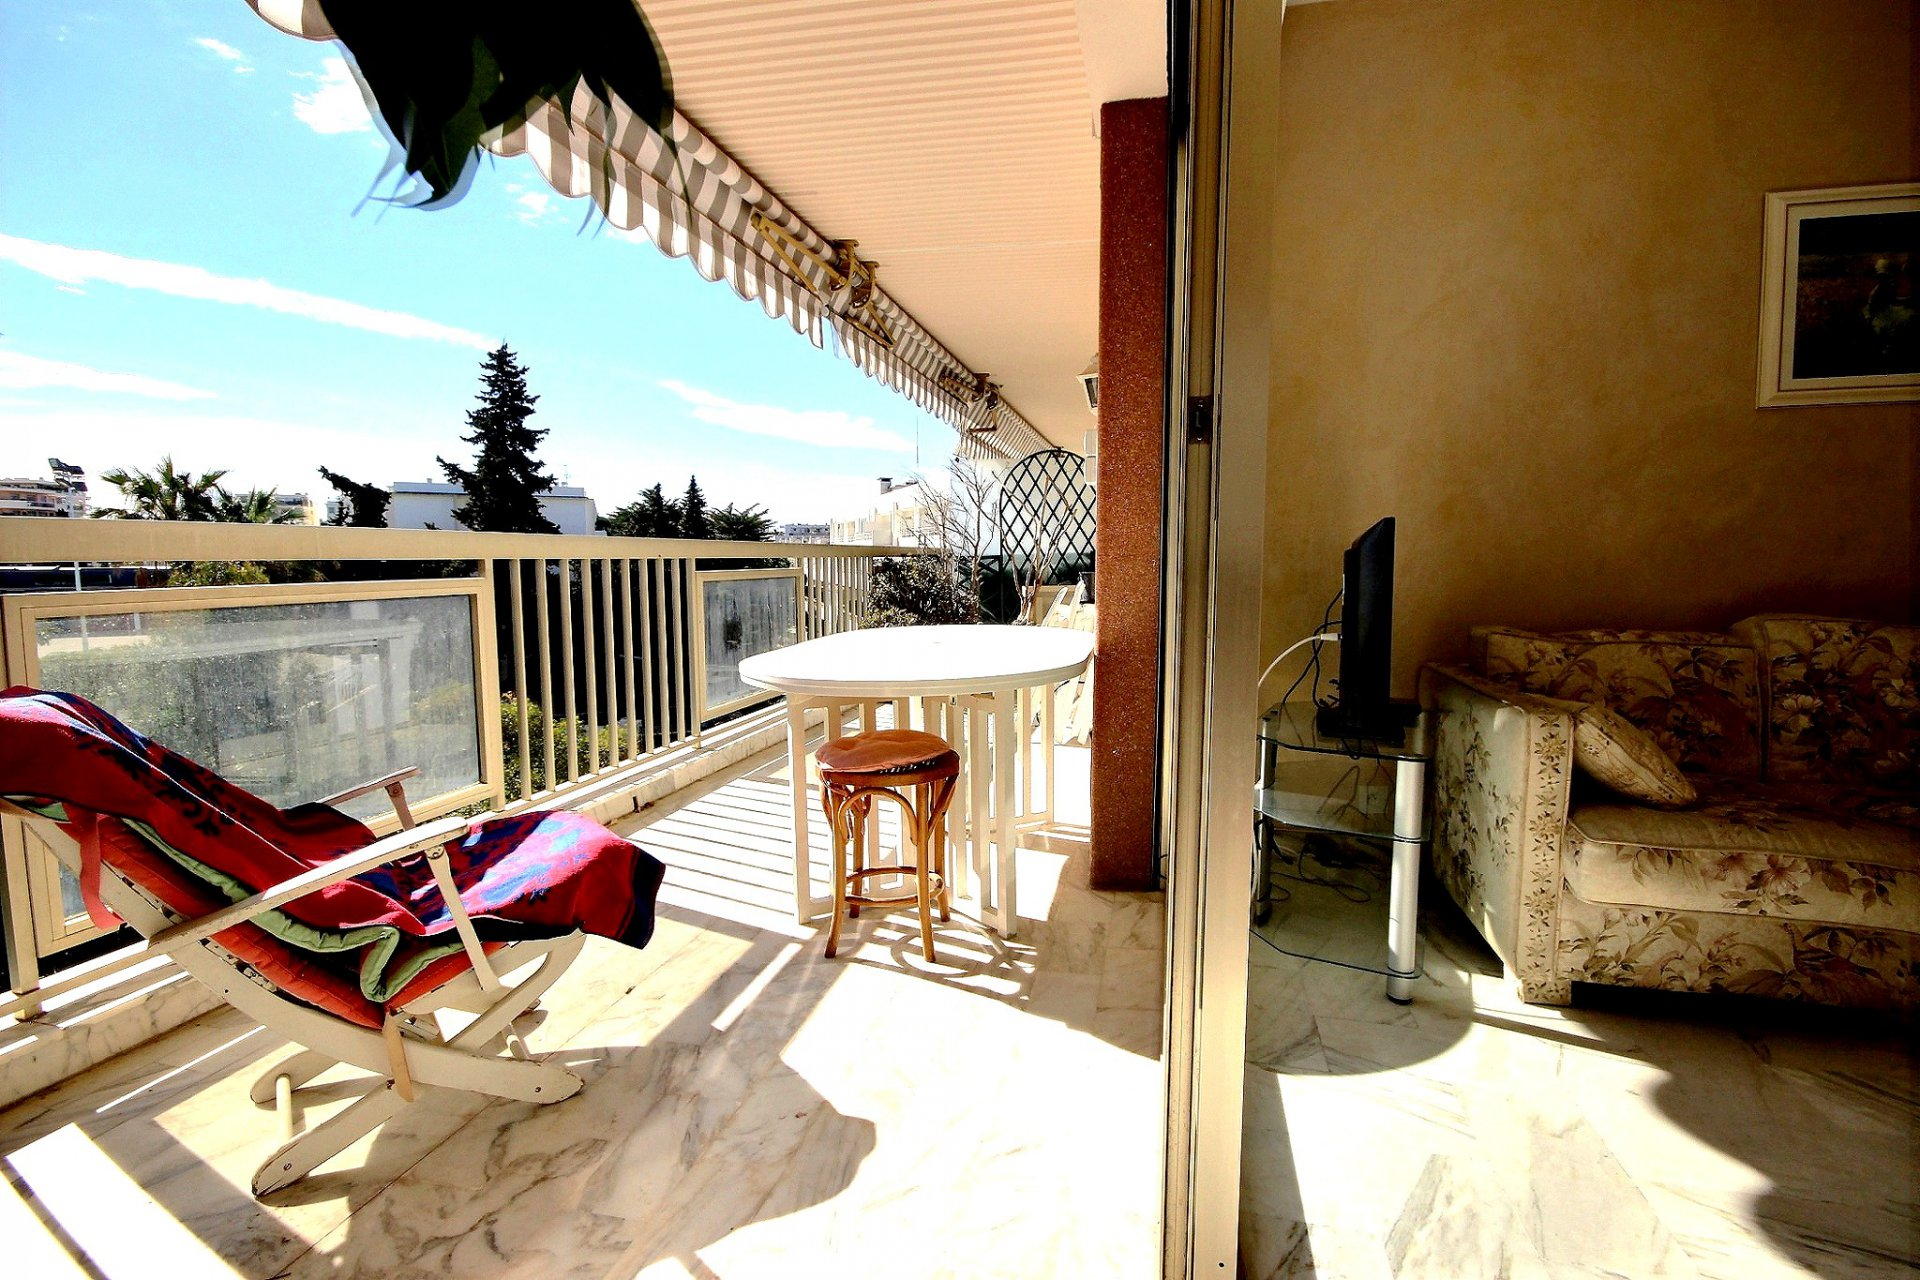 Property for sale with large terrace in a building near the Croisette